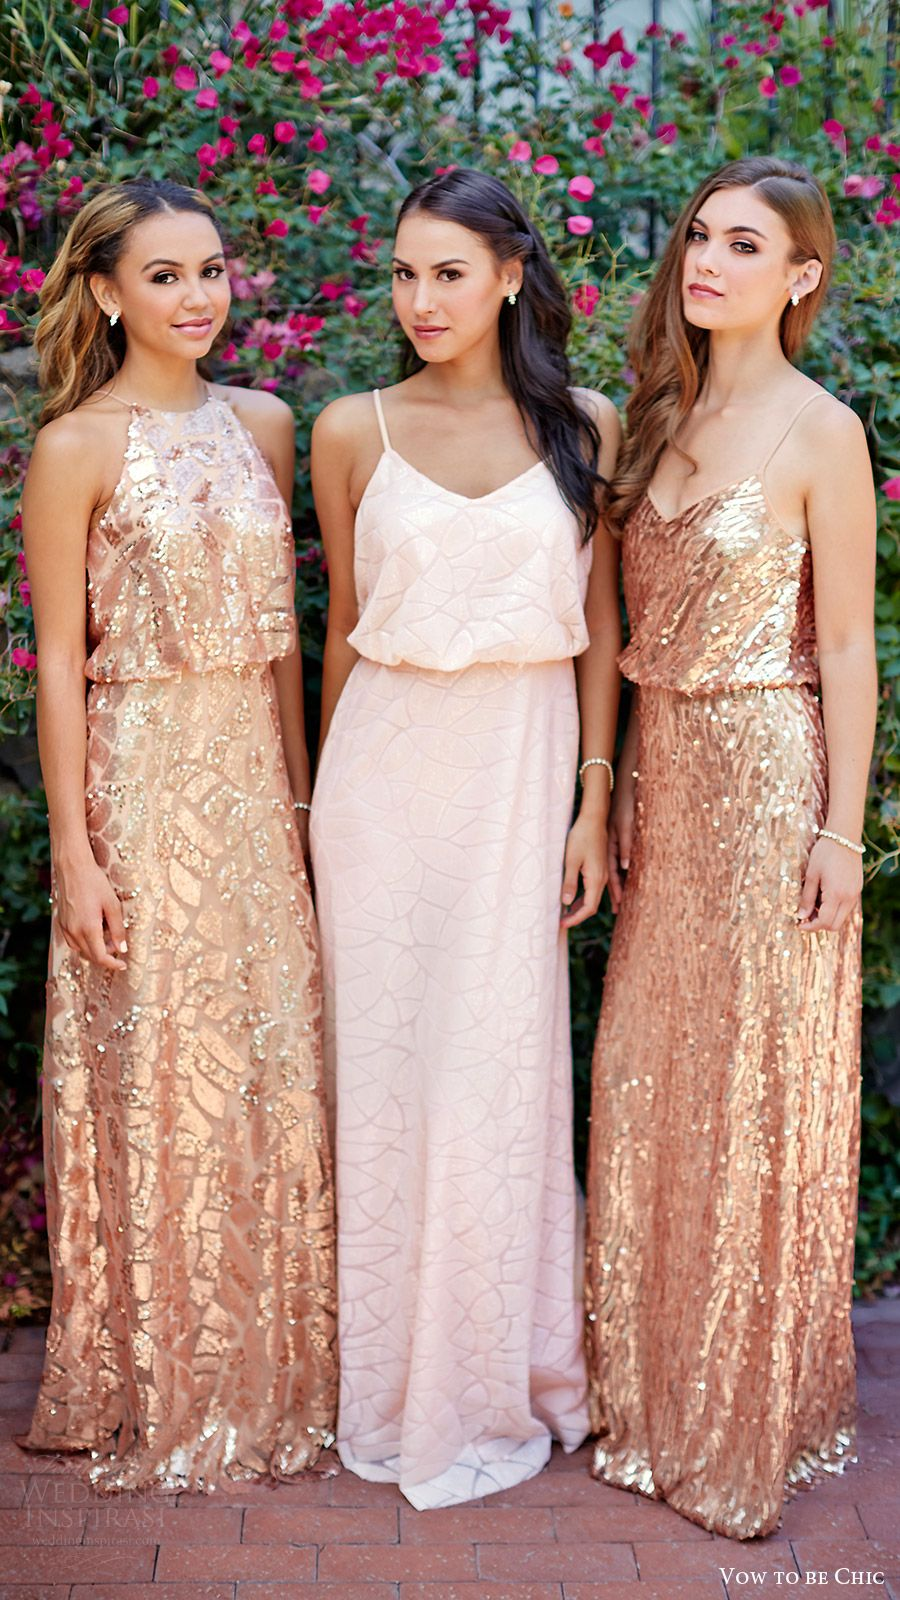 Vow To Be Chic 2016 Metallics Rose Gold Blush Off White Bridesmaids Dresses For